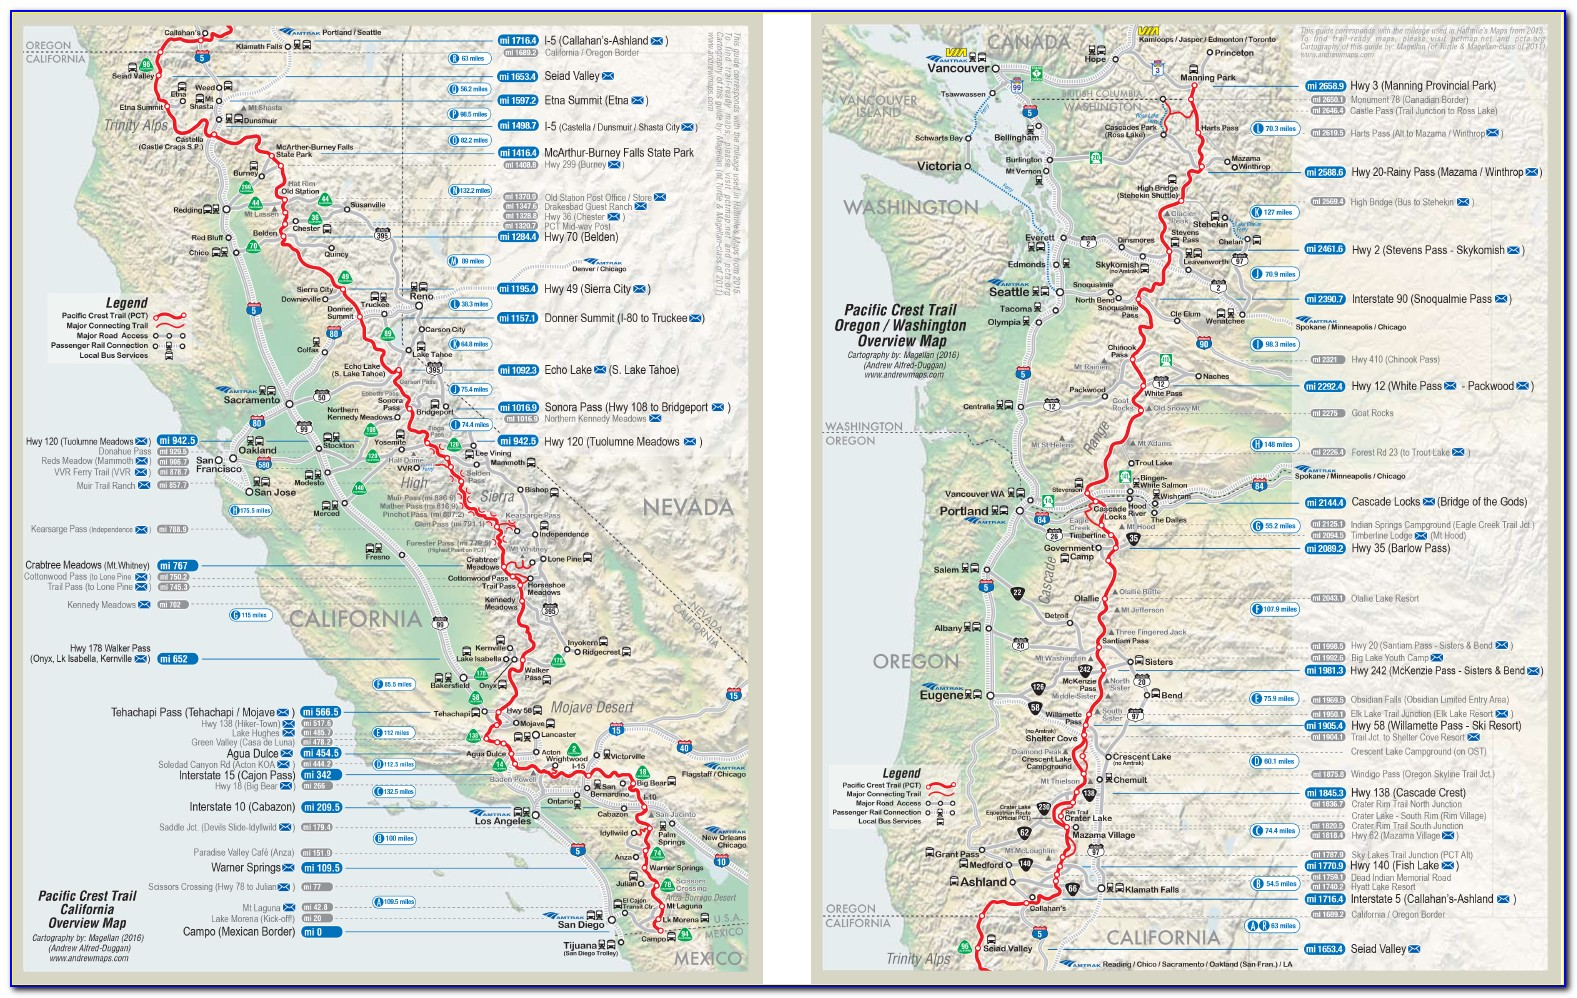 Pct California Overview 2016